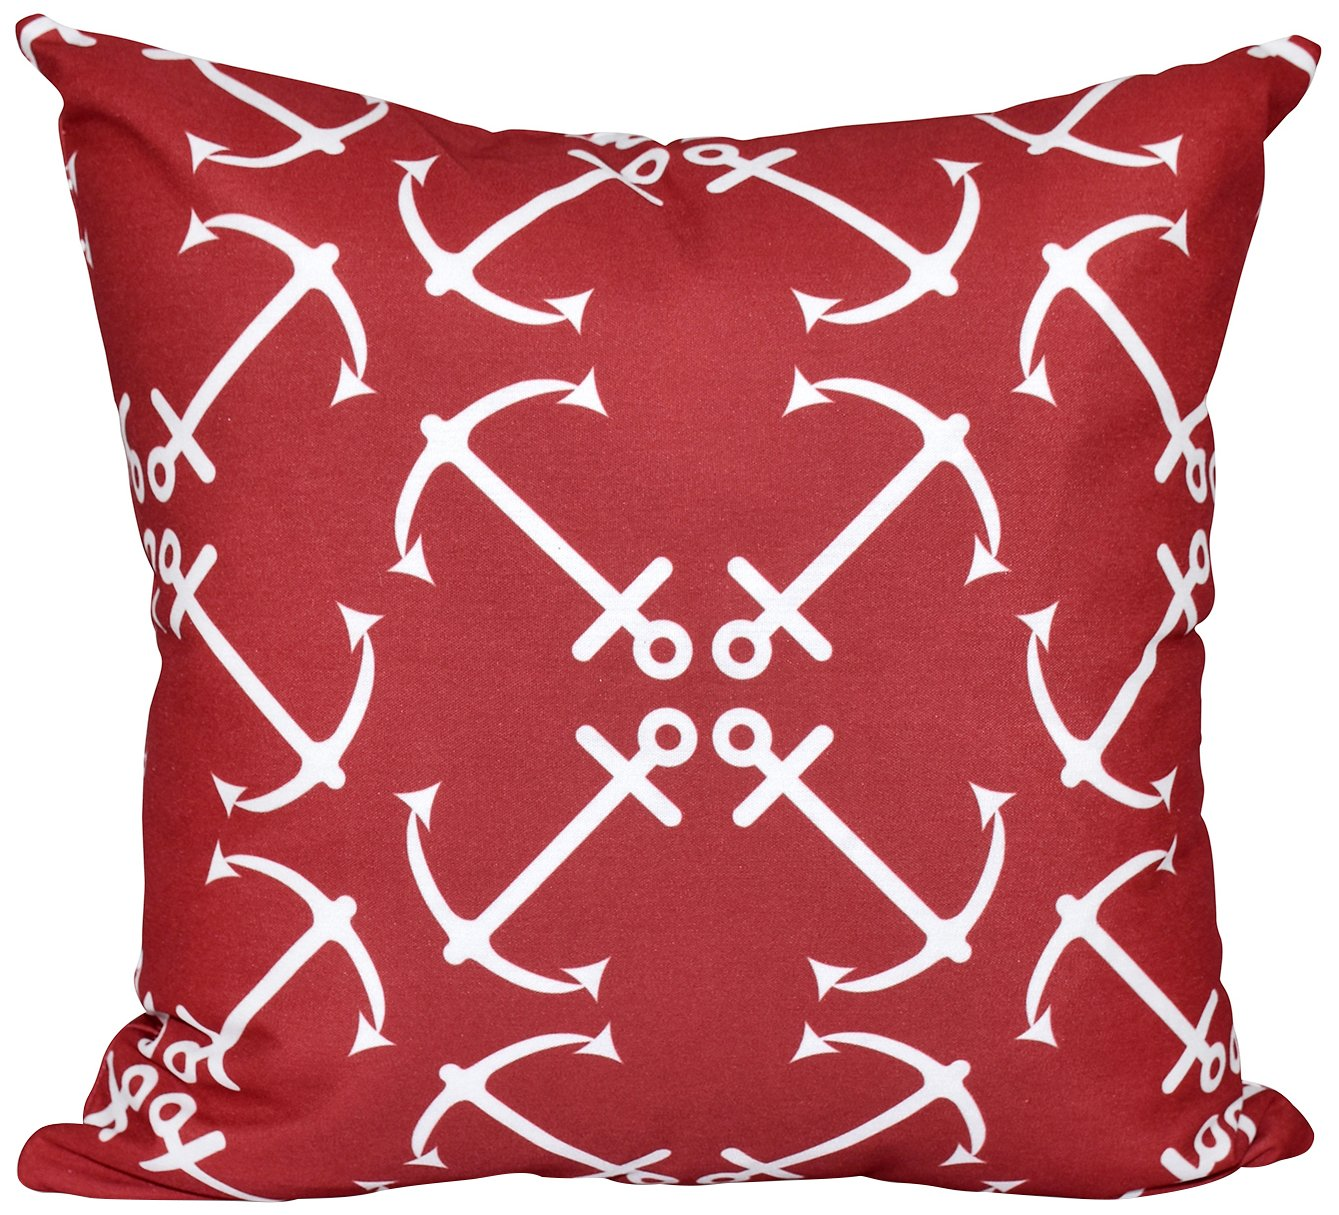 Anchors Up Geometric Print Pillow 26x26 Red E by design PGN445RE1-26 26 x 26-inch